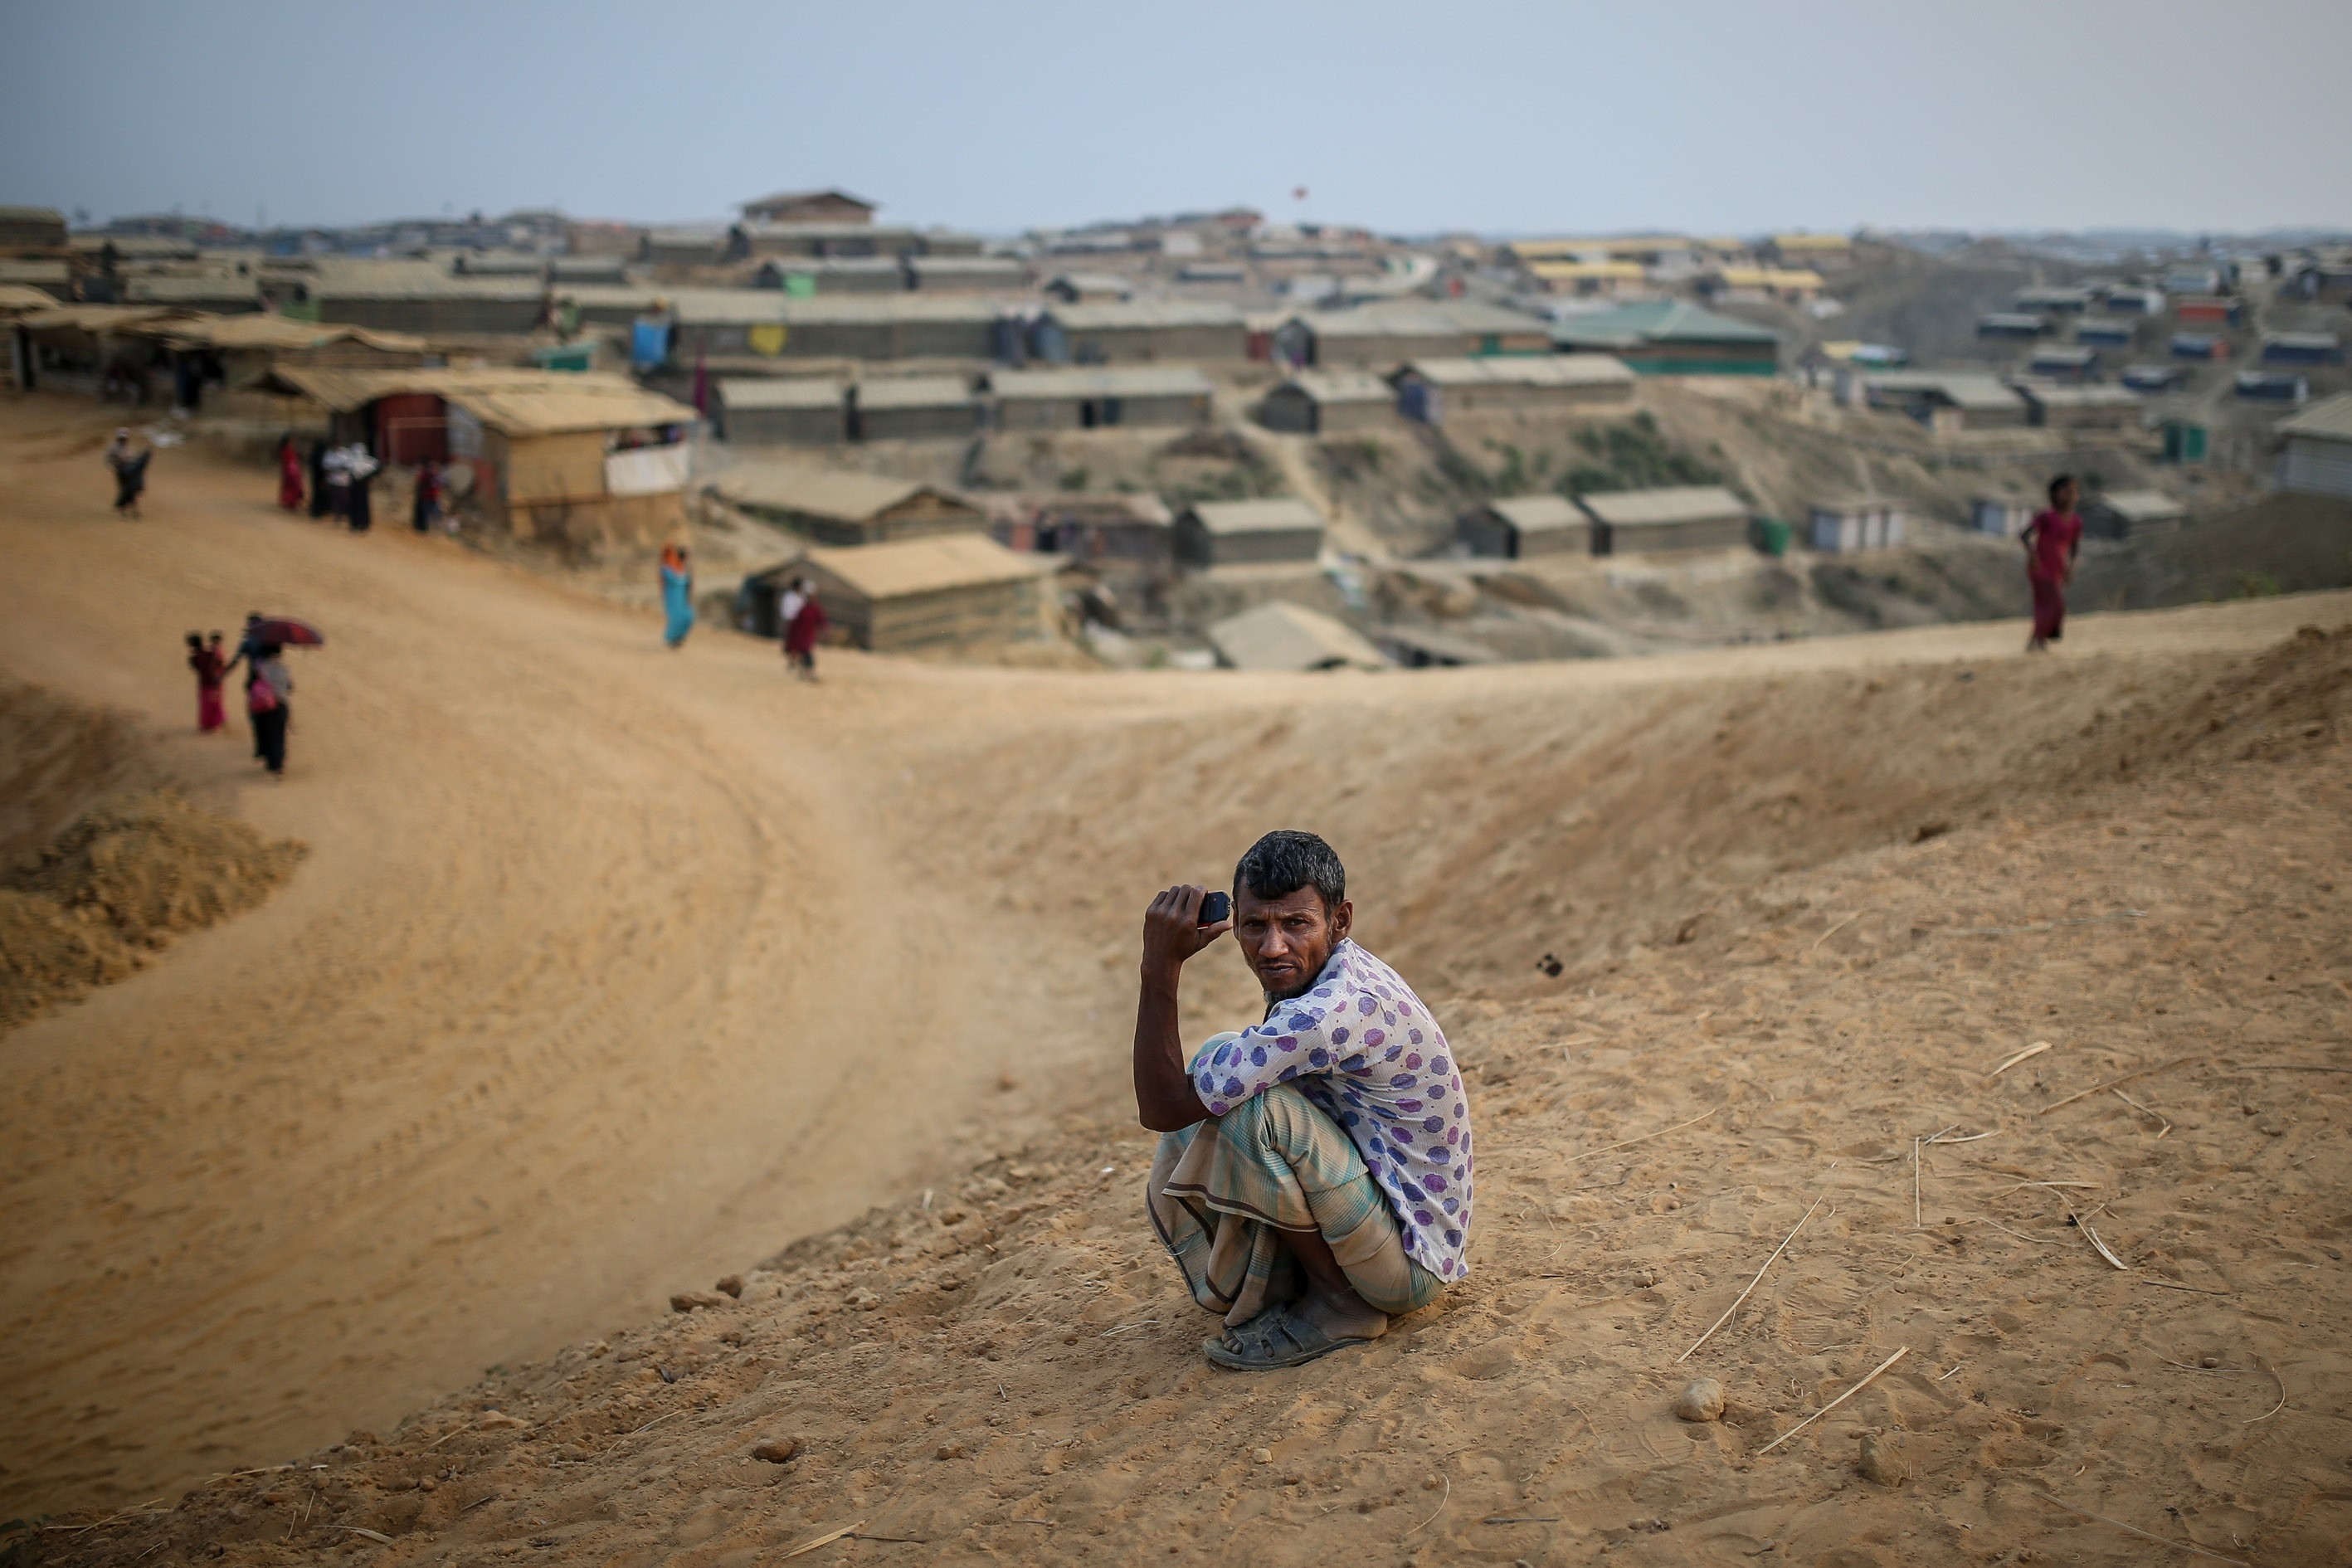 A Rohingya man sits on the ground in the at Kutupalong refugee camp near Cox's Bazar, Bangladesh on April 7, 2018.